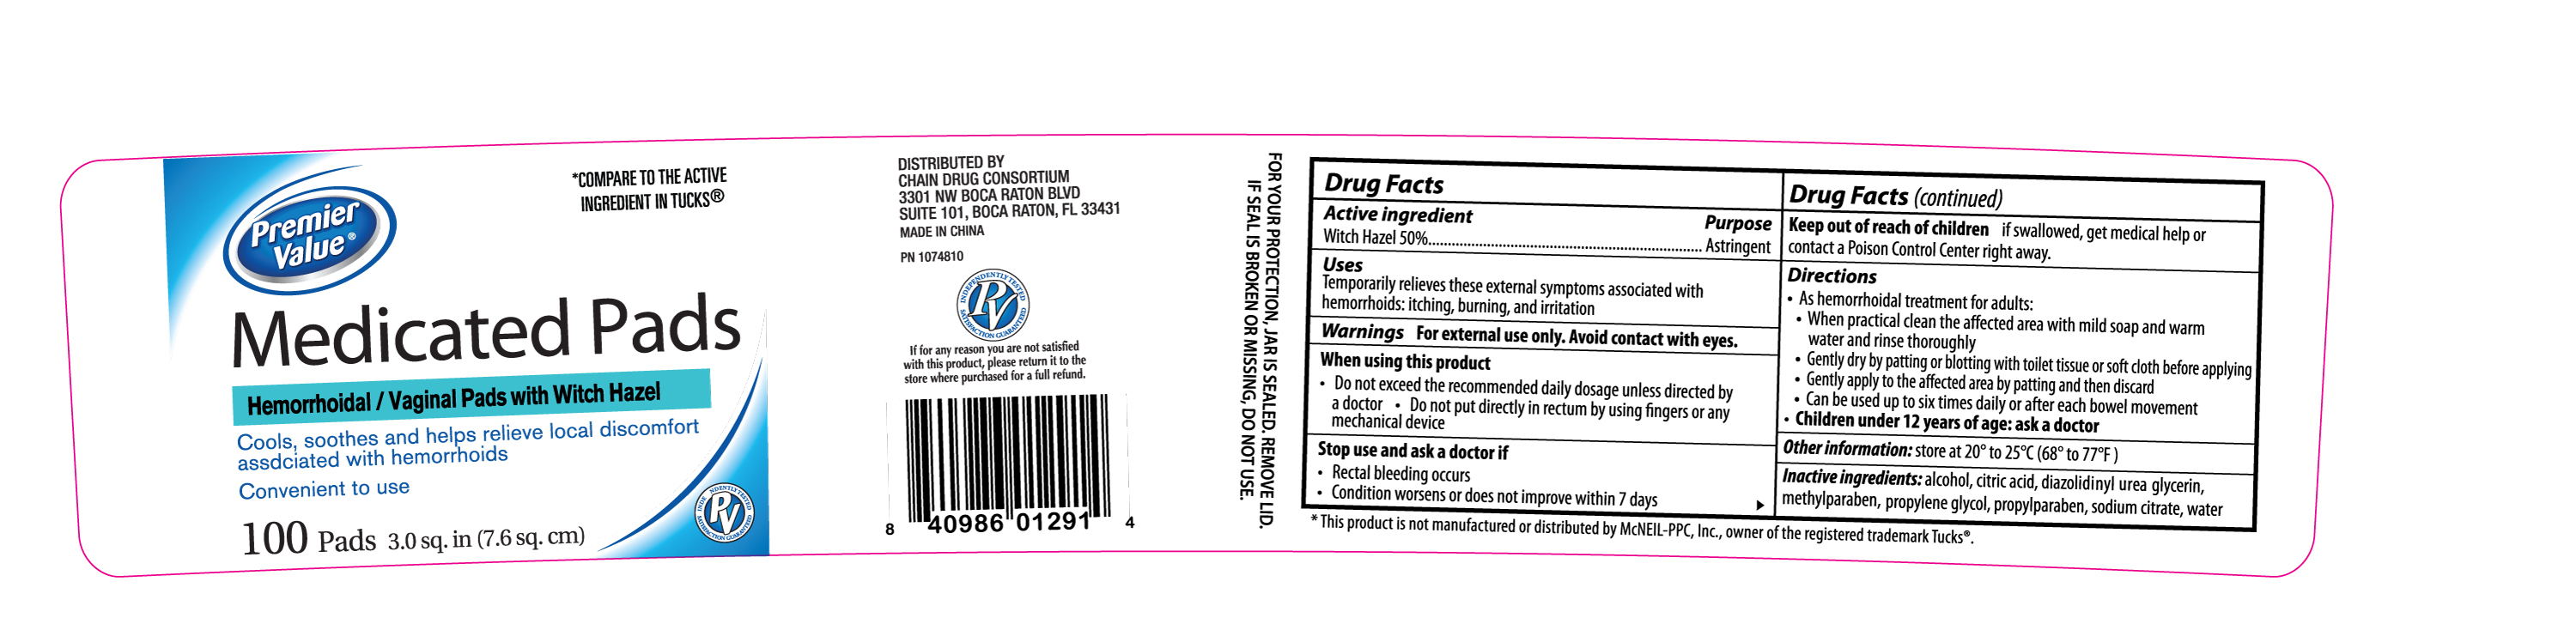 Premier Value Medicated Pads (Witch Hazel) Solution [Chain Drug Consortium, Llc]